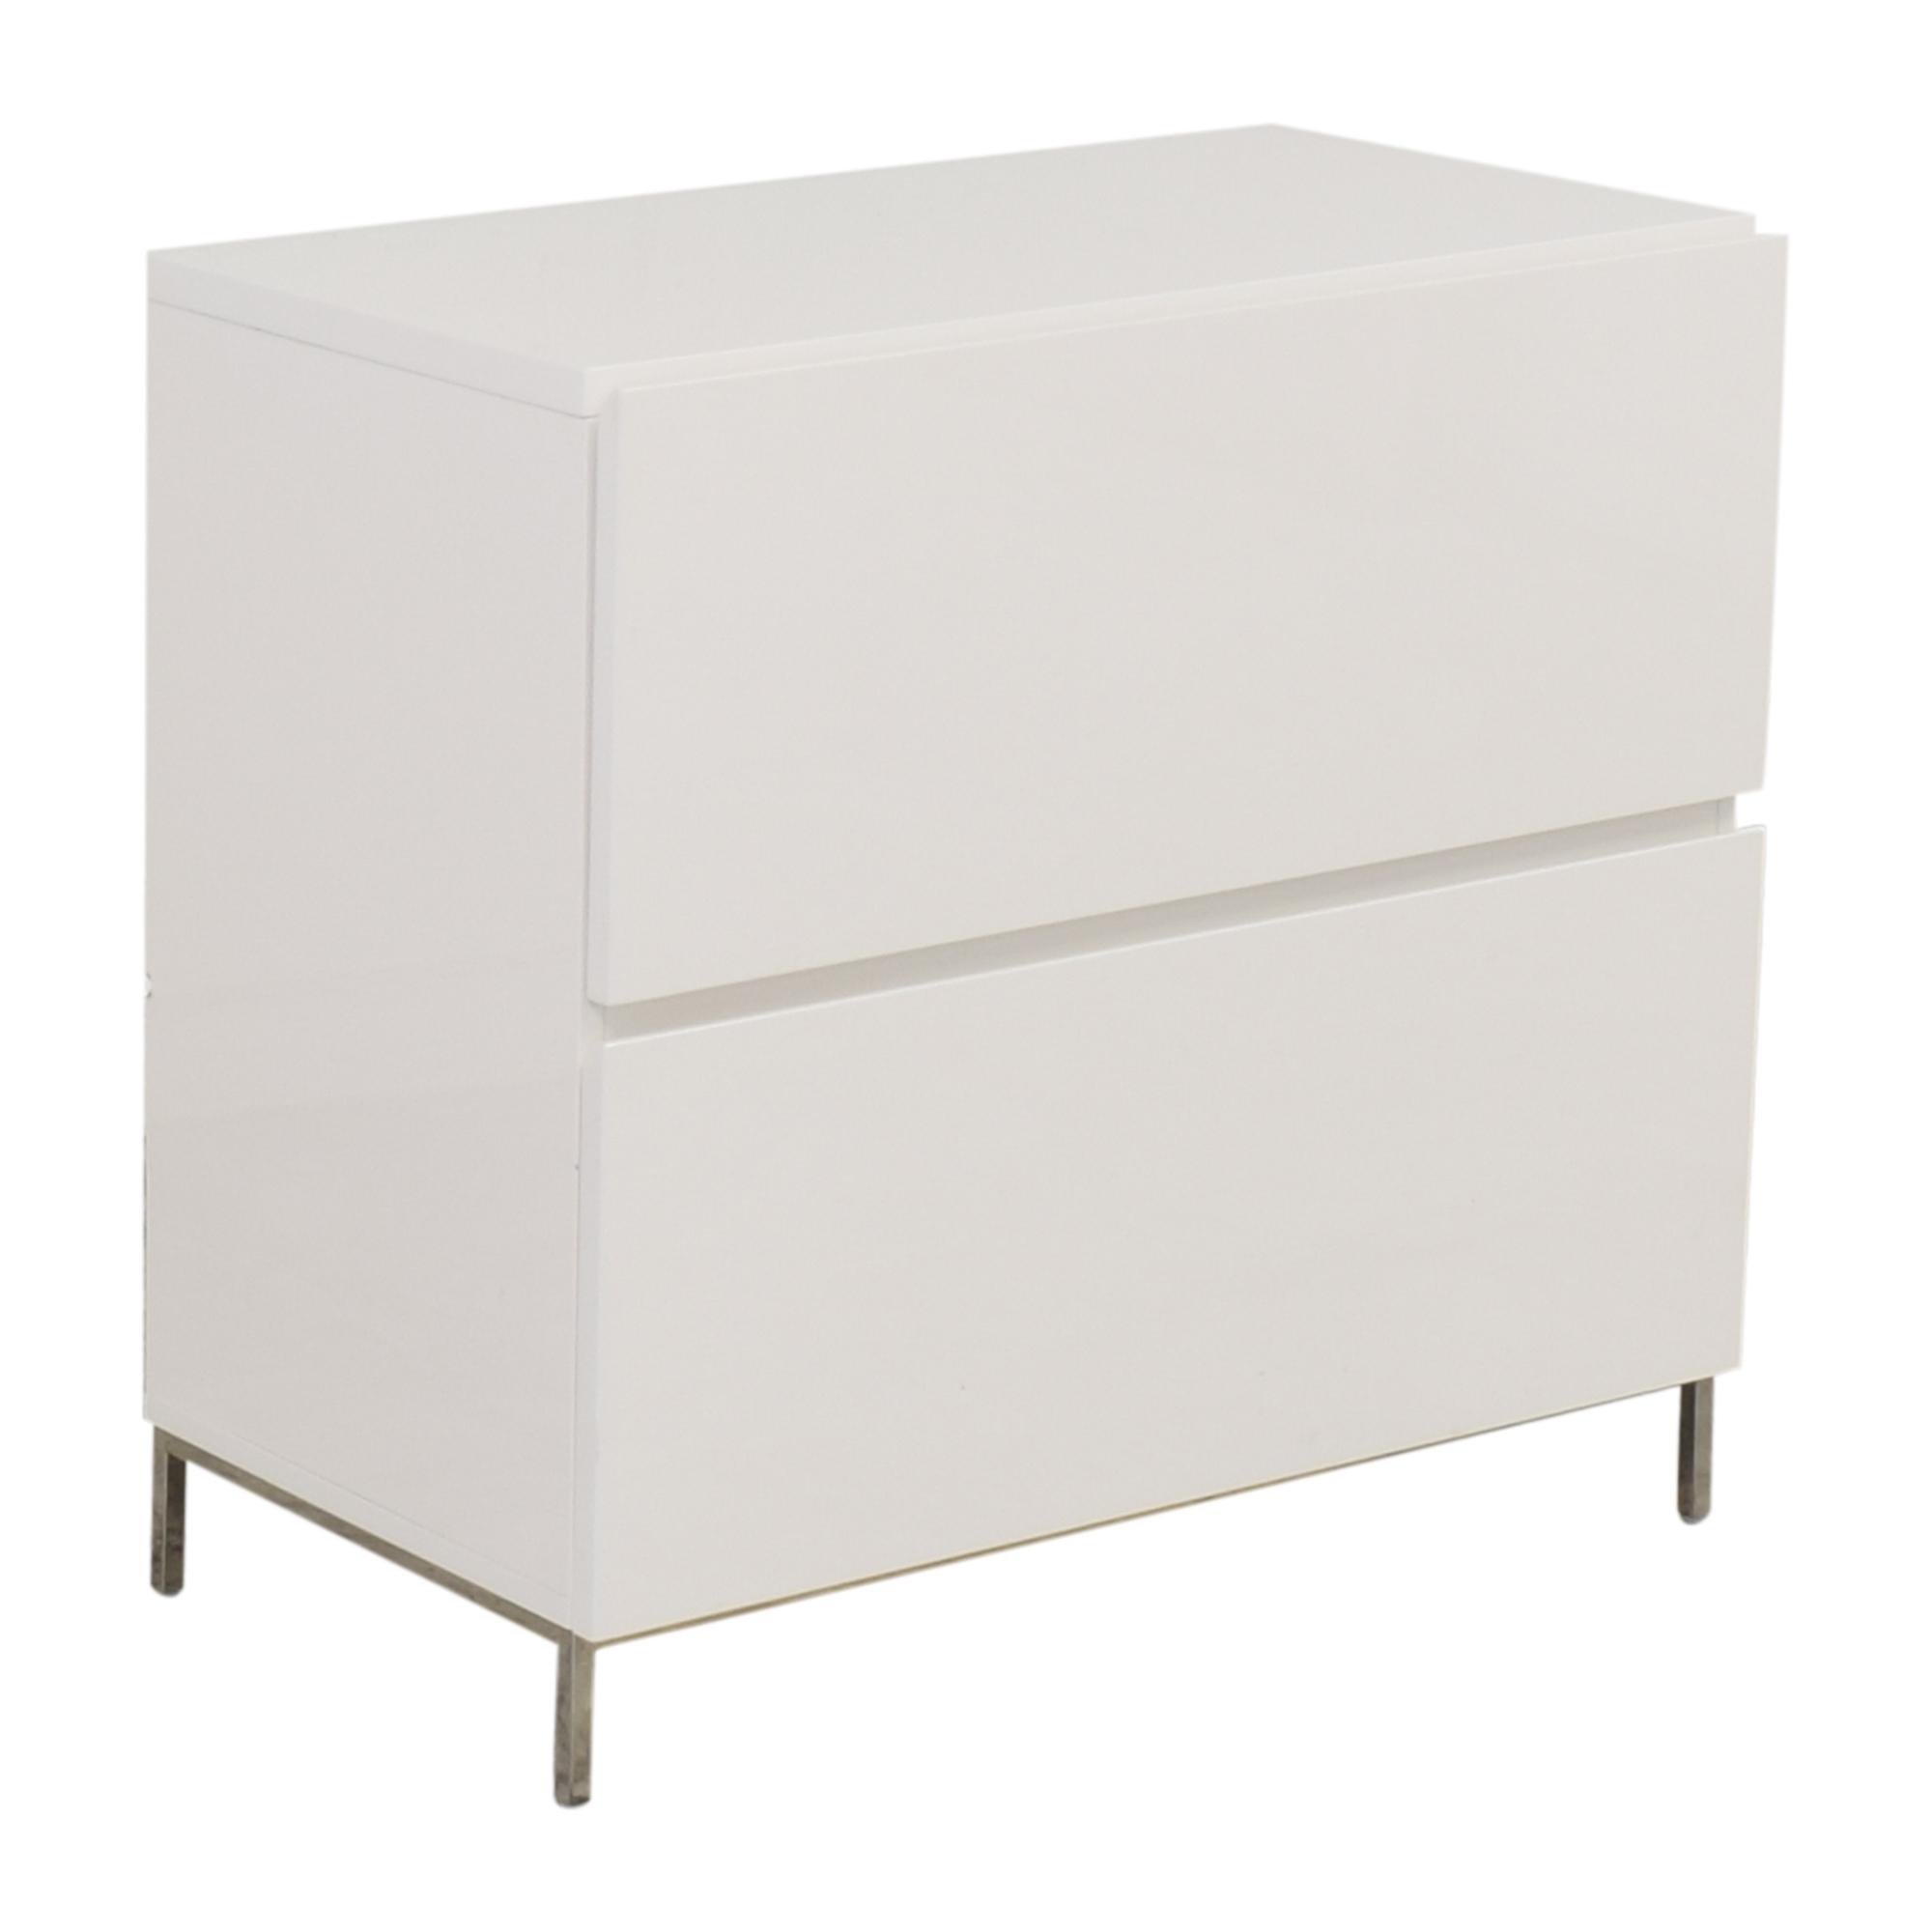 West Elm West Elm Lacquer Storage Modular Lateral File Cabinet